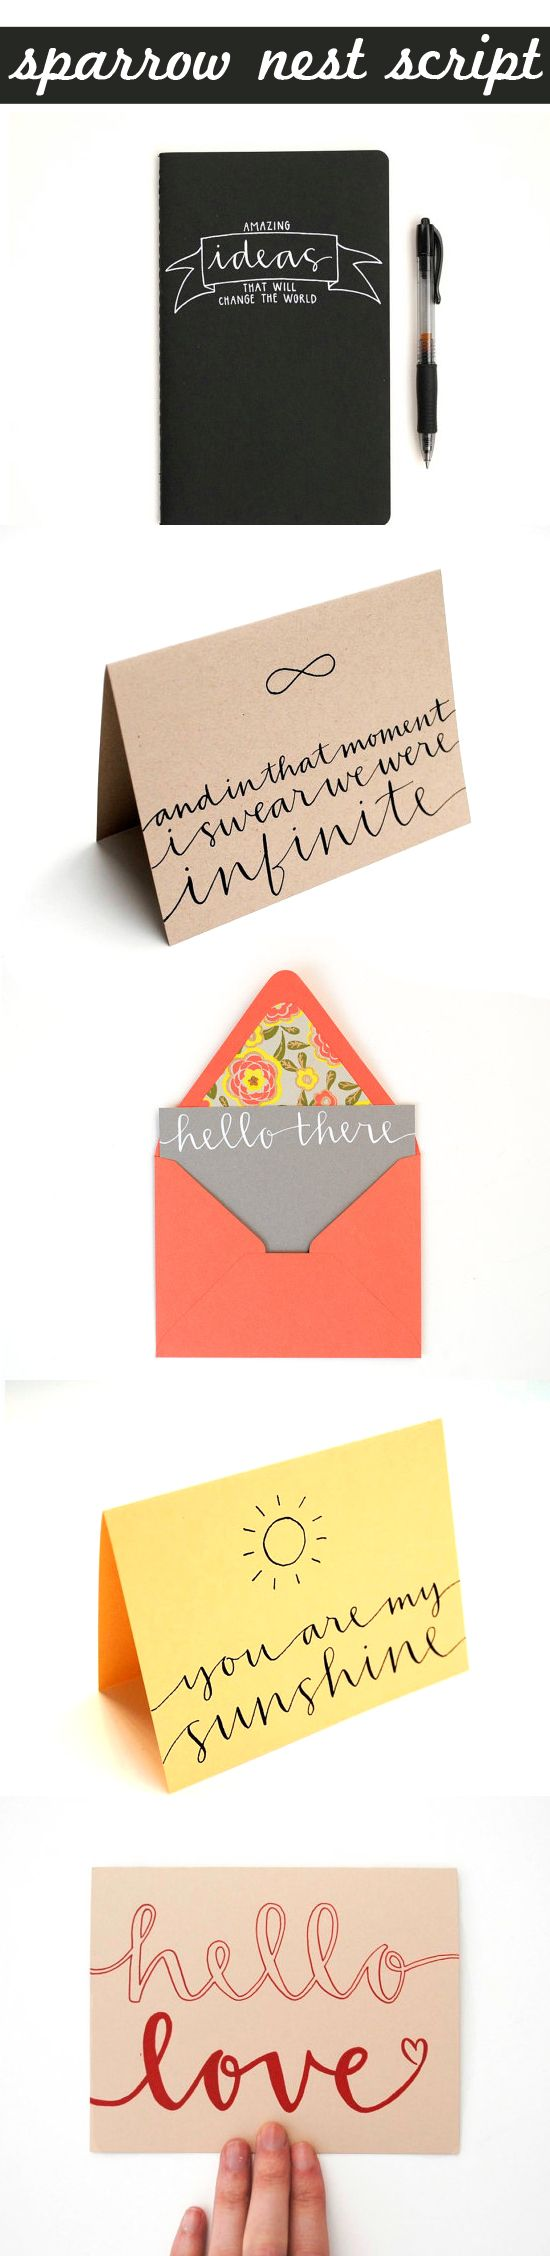 sparrow nest script cards inspired to share. use the font to practice writing